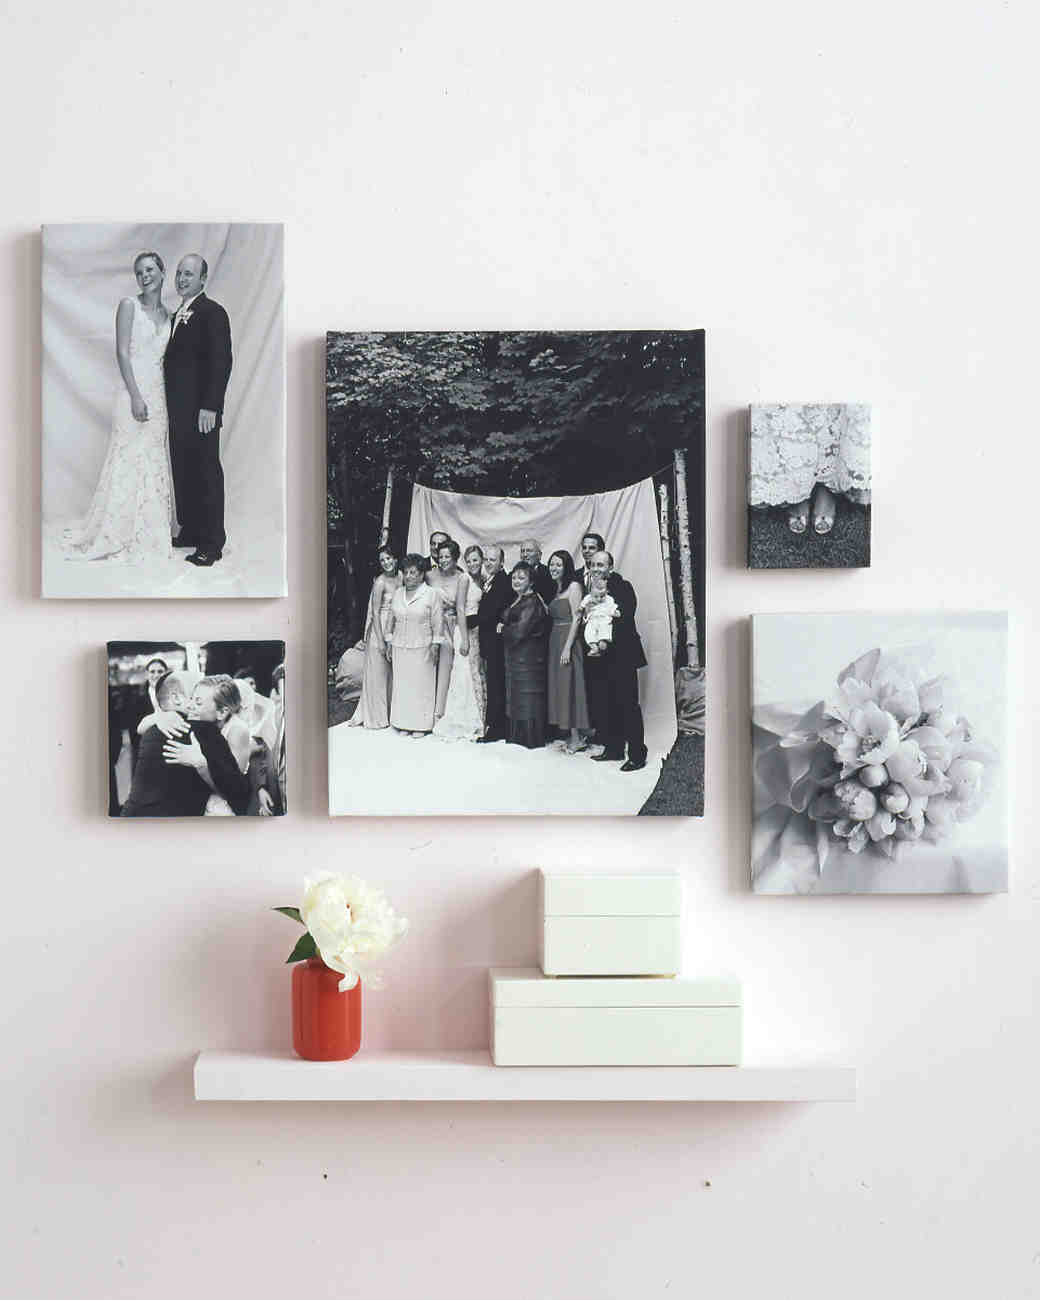 Modern Wedding Backdrop Ideas: 30 Creative Ways To Display Photos At Your Wedding